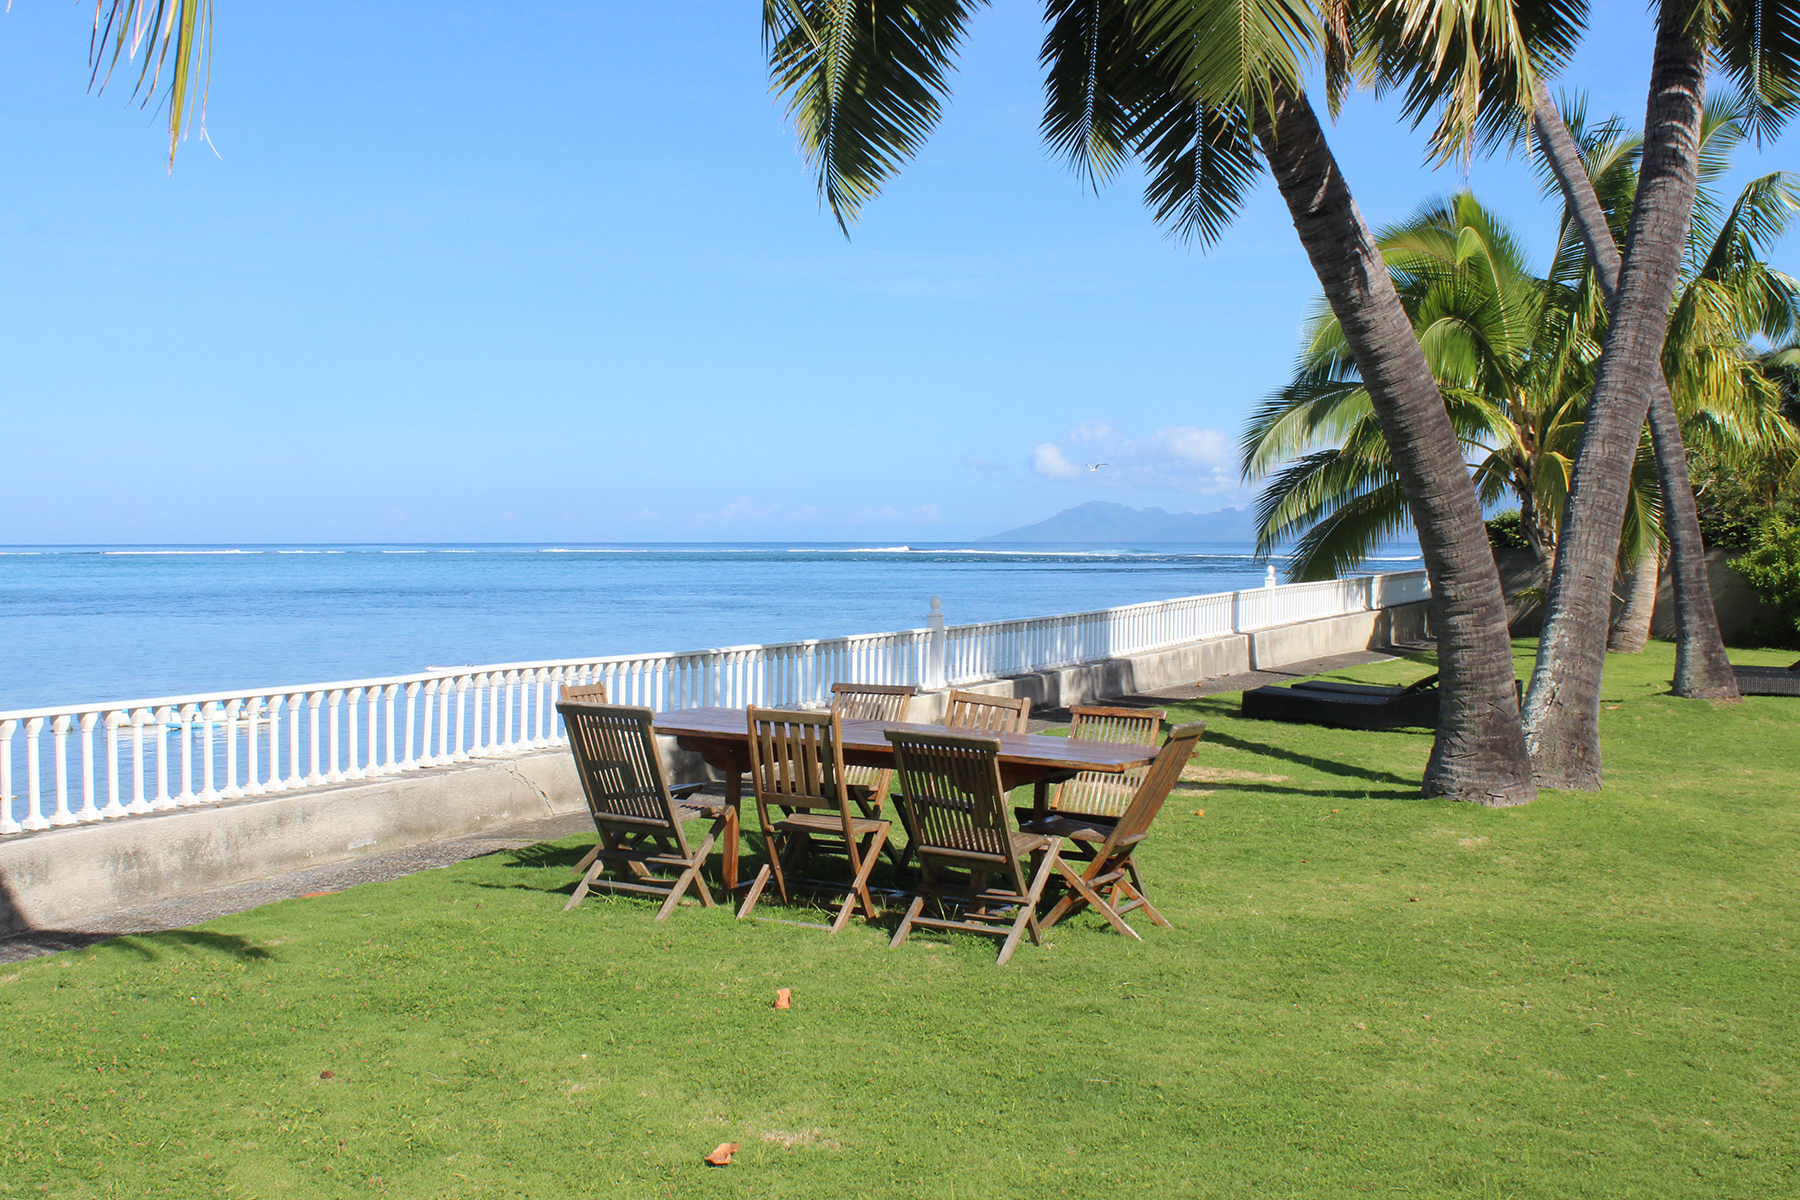 Single Family Home for Sale at luxurious property in front of the lagoon Musée des îles Punaauia, Tahiti 98718 French Polynesia